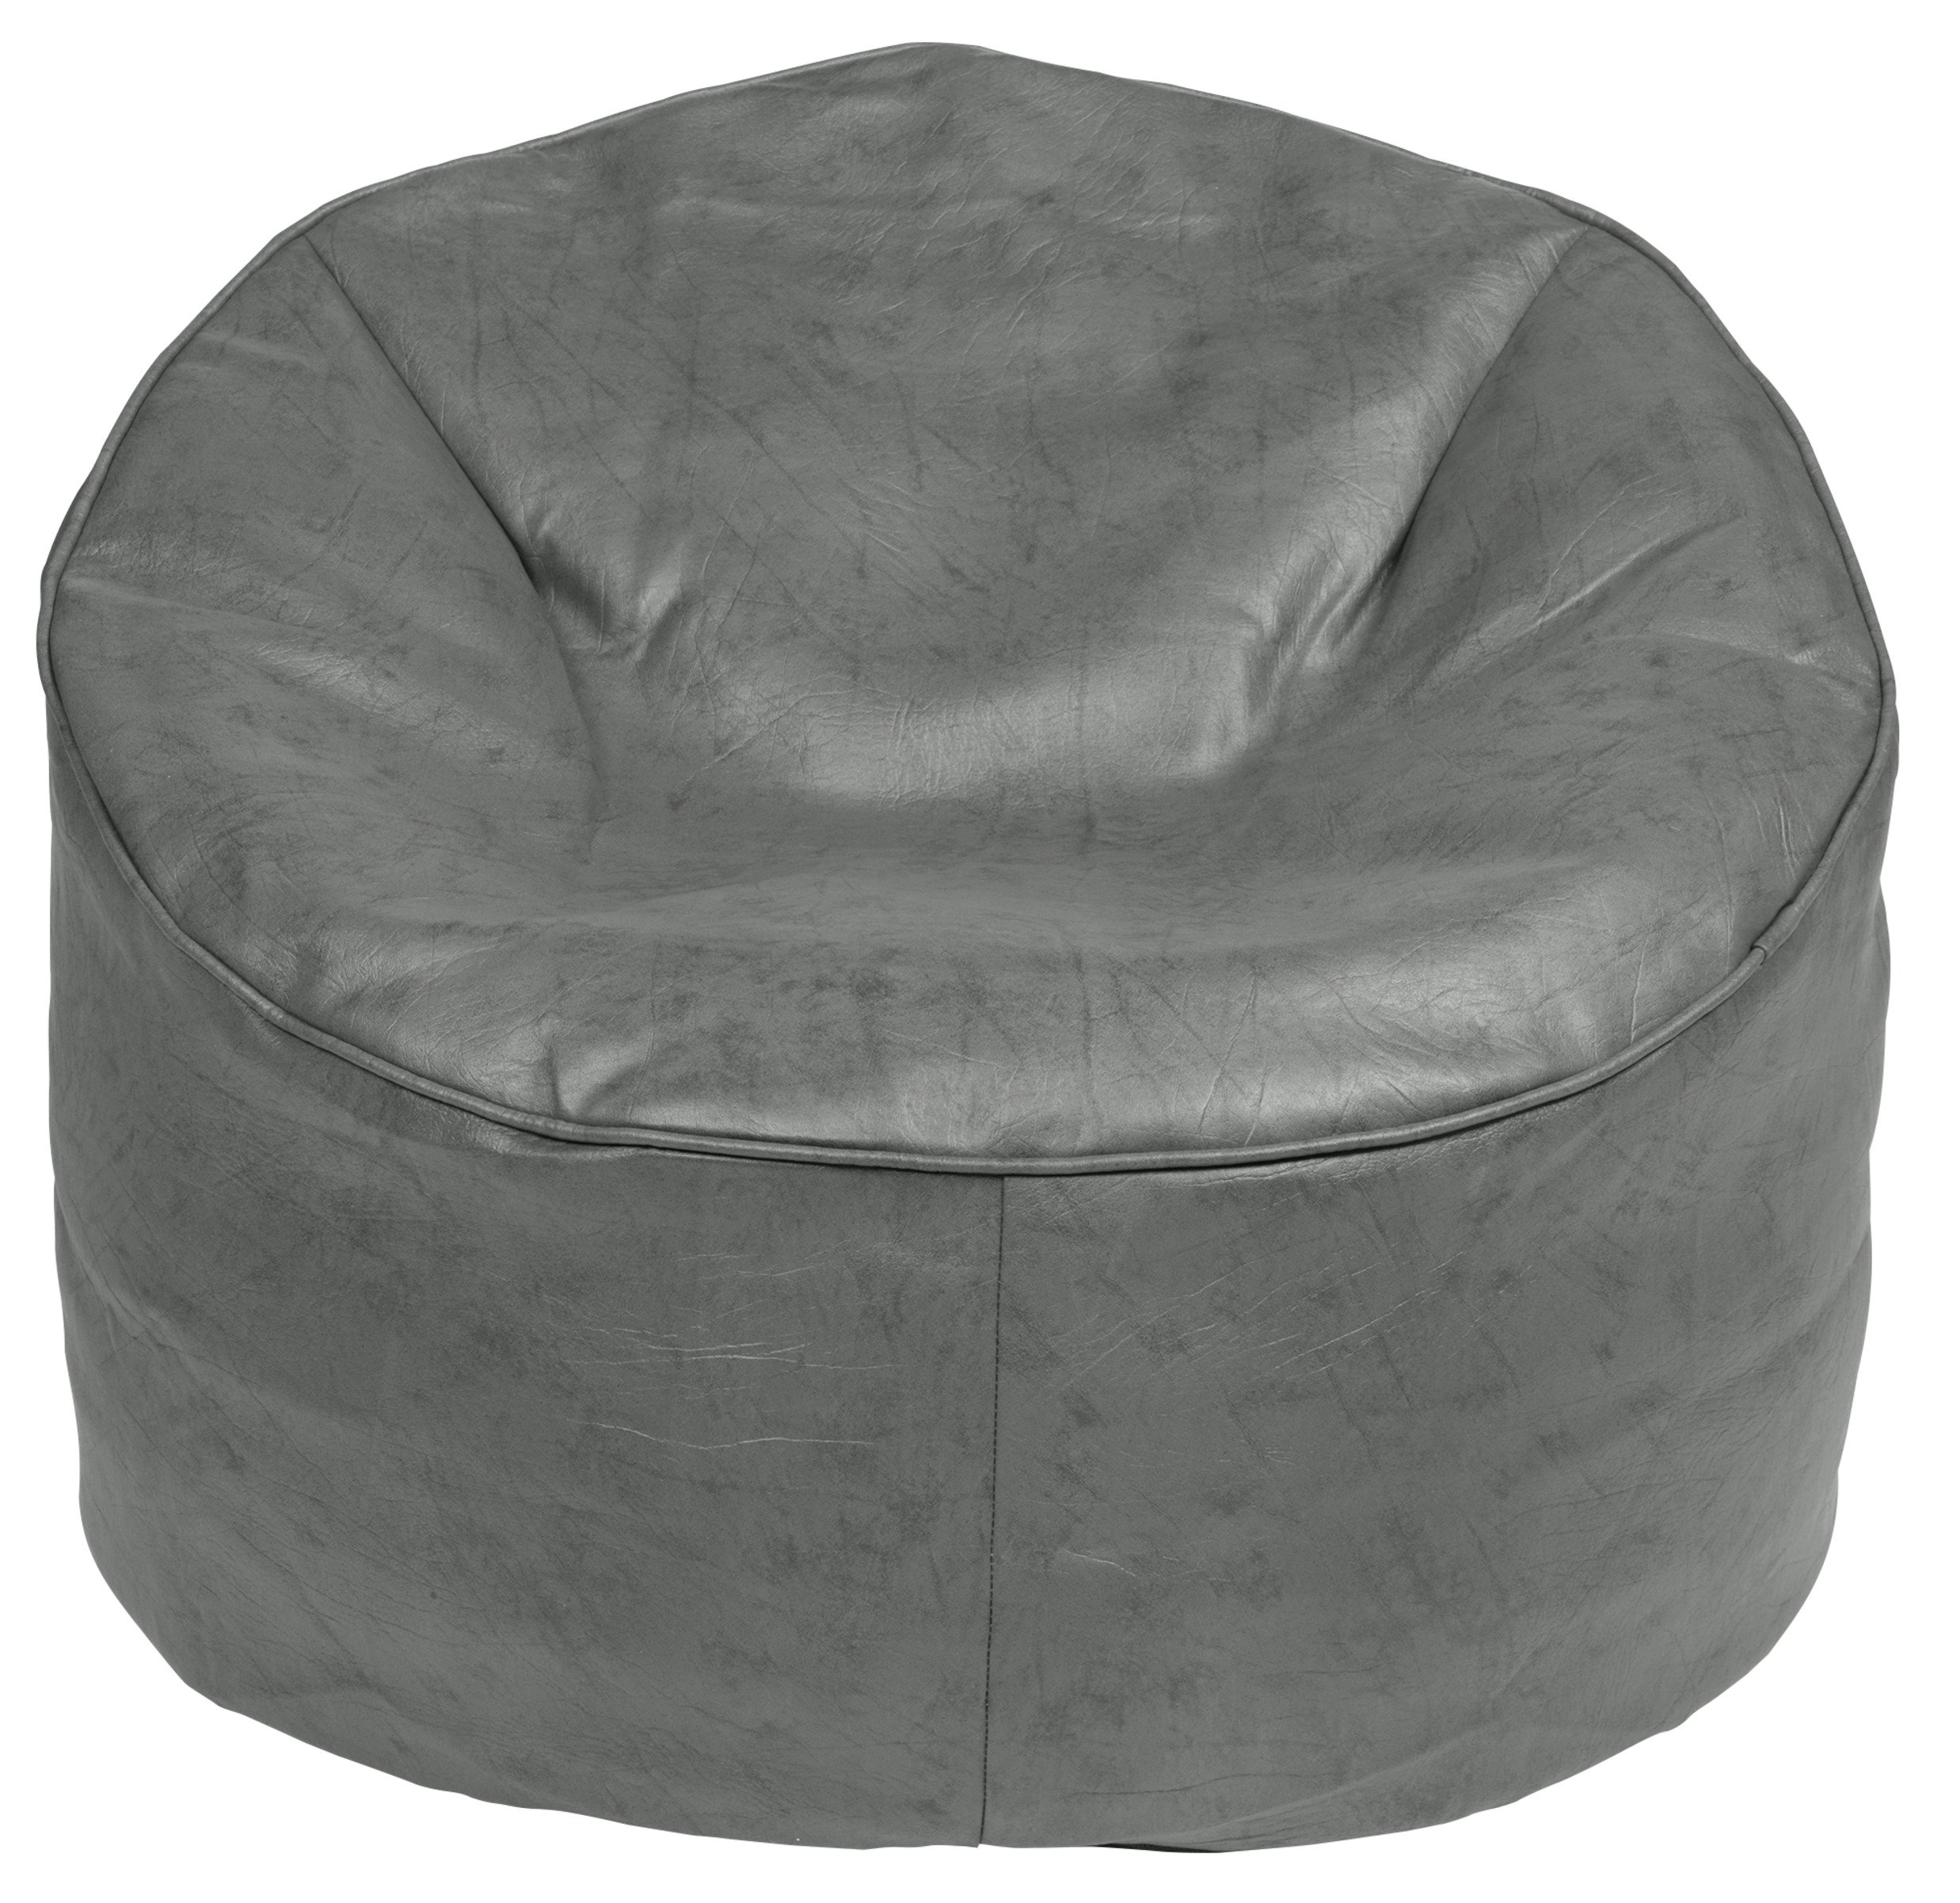 HOME Leather Effect Bean Chair - Grey.